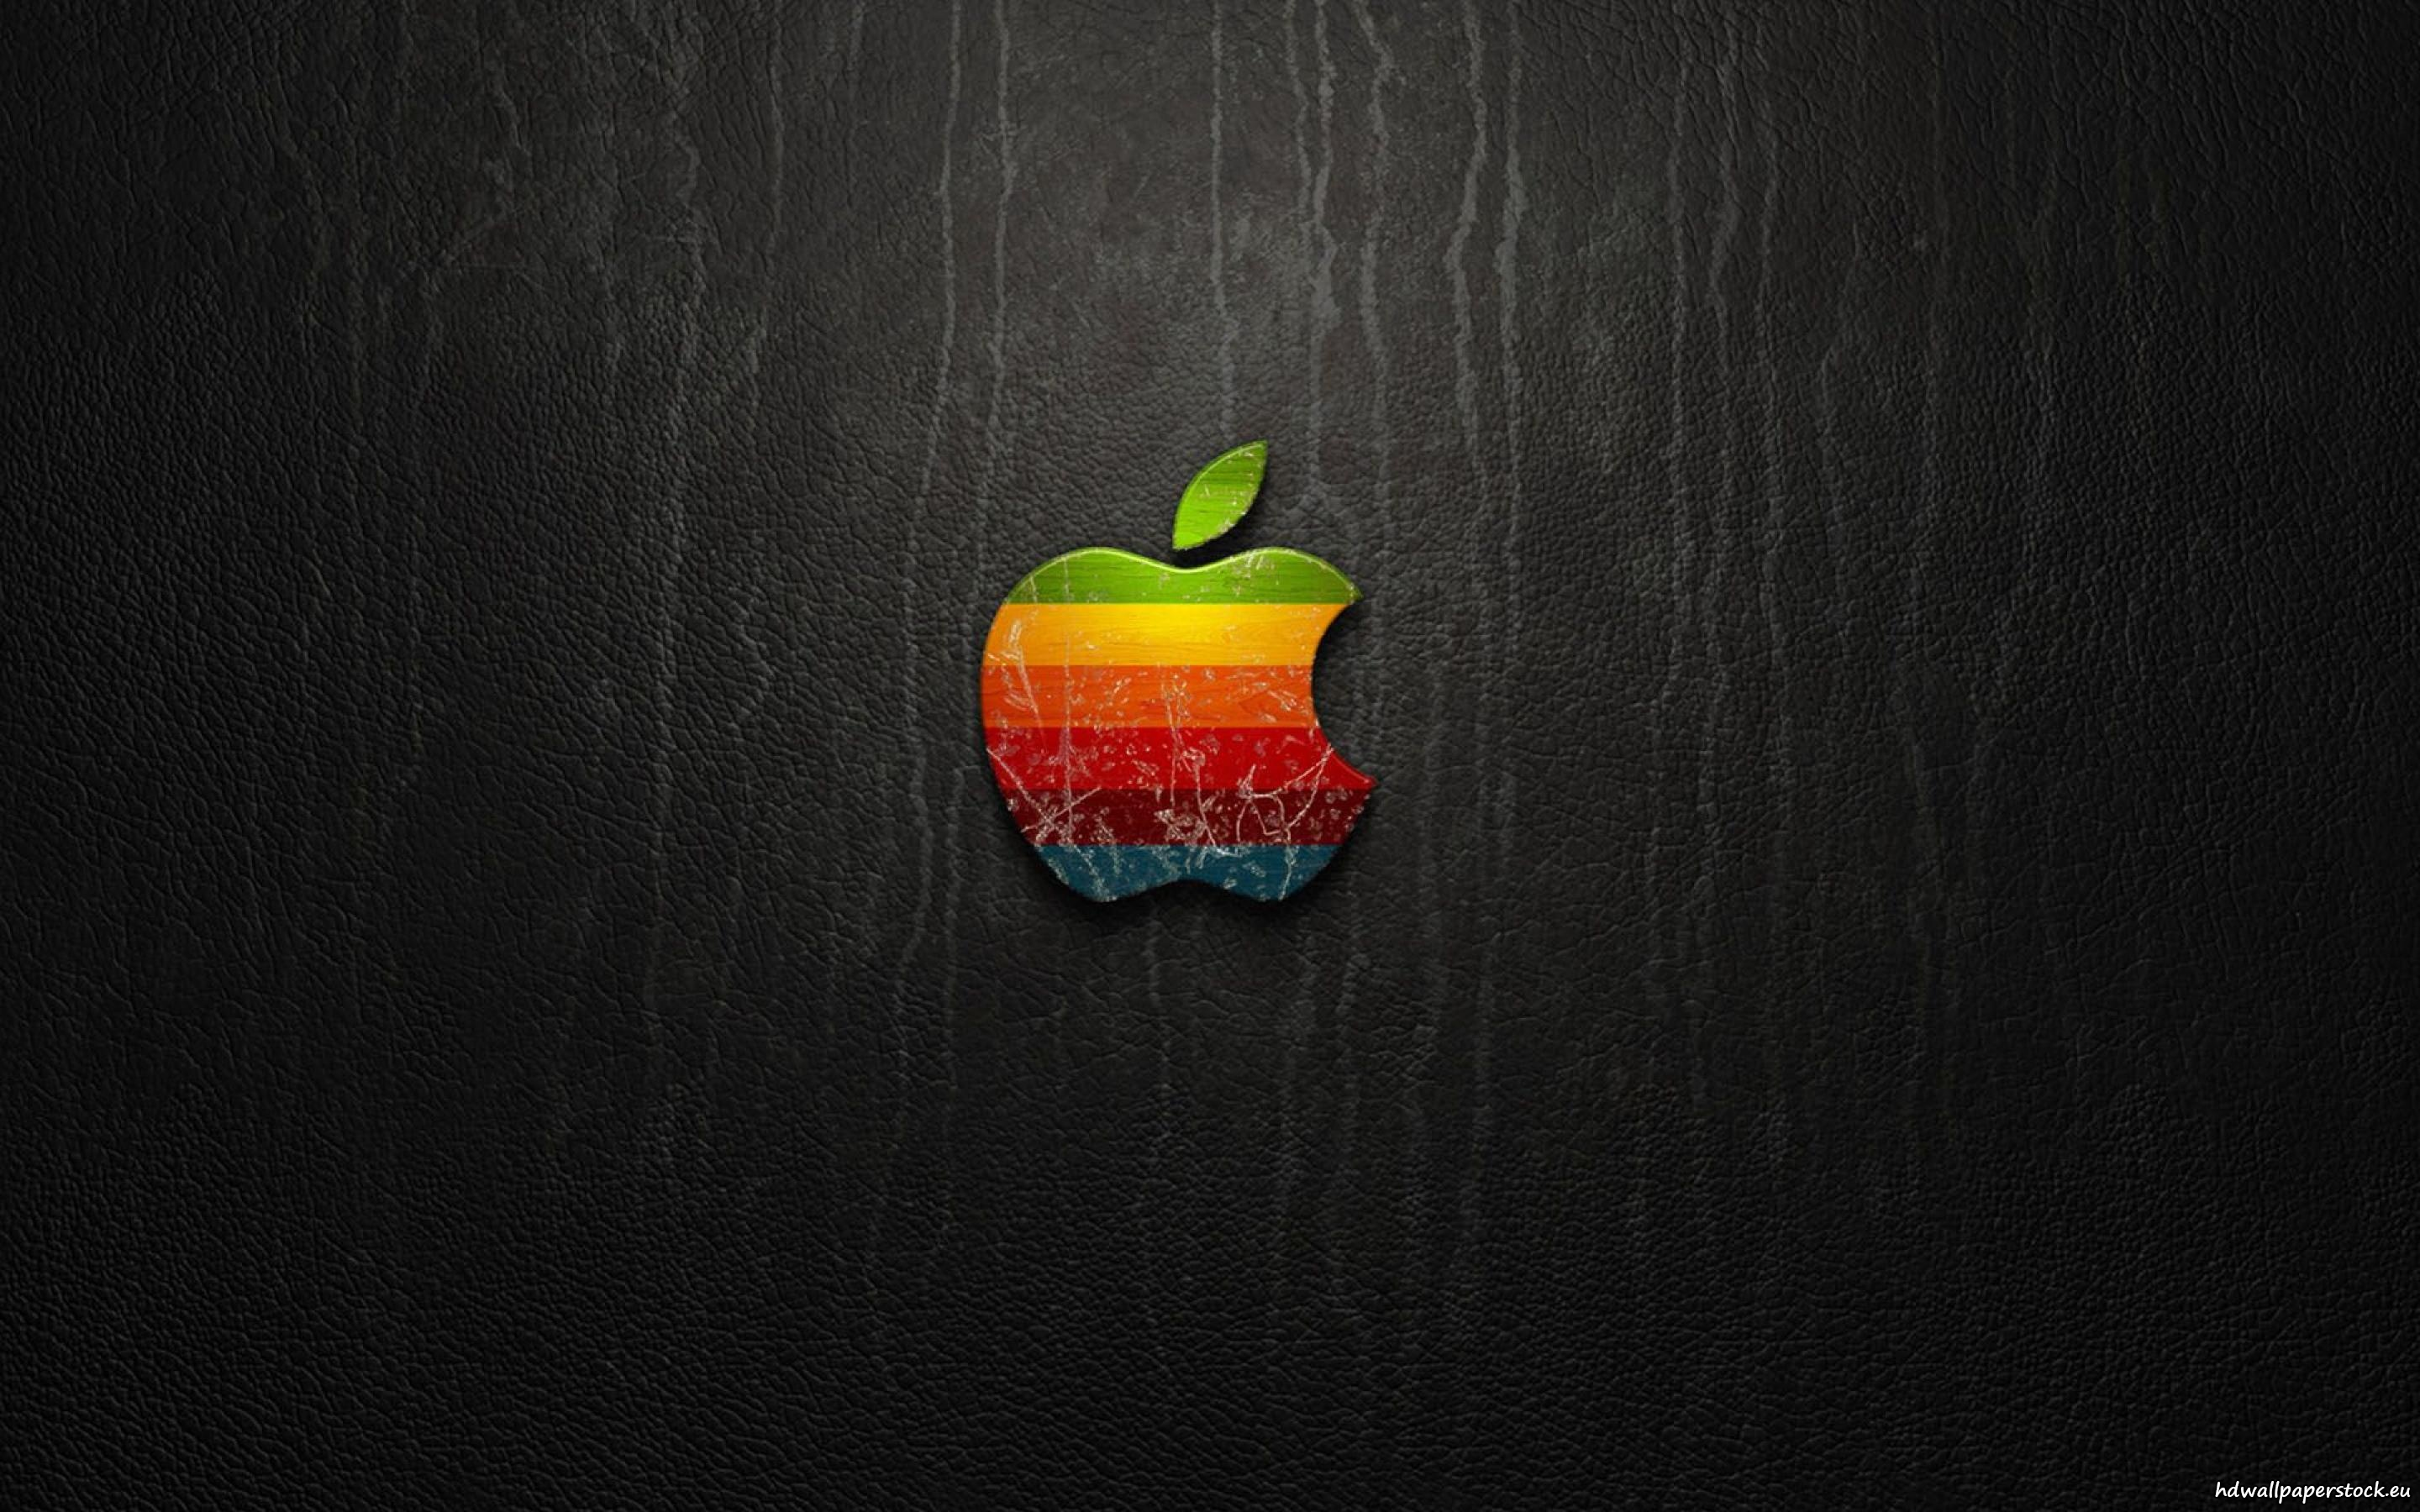 Apple Logo Wallpaper #applelogowallpaper | Apple Logo Wallpaper